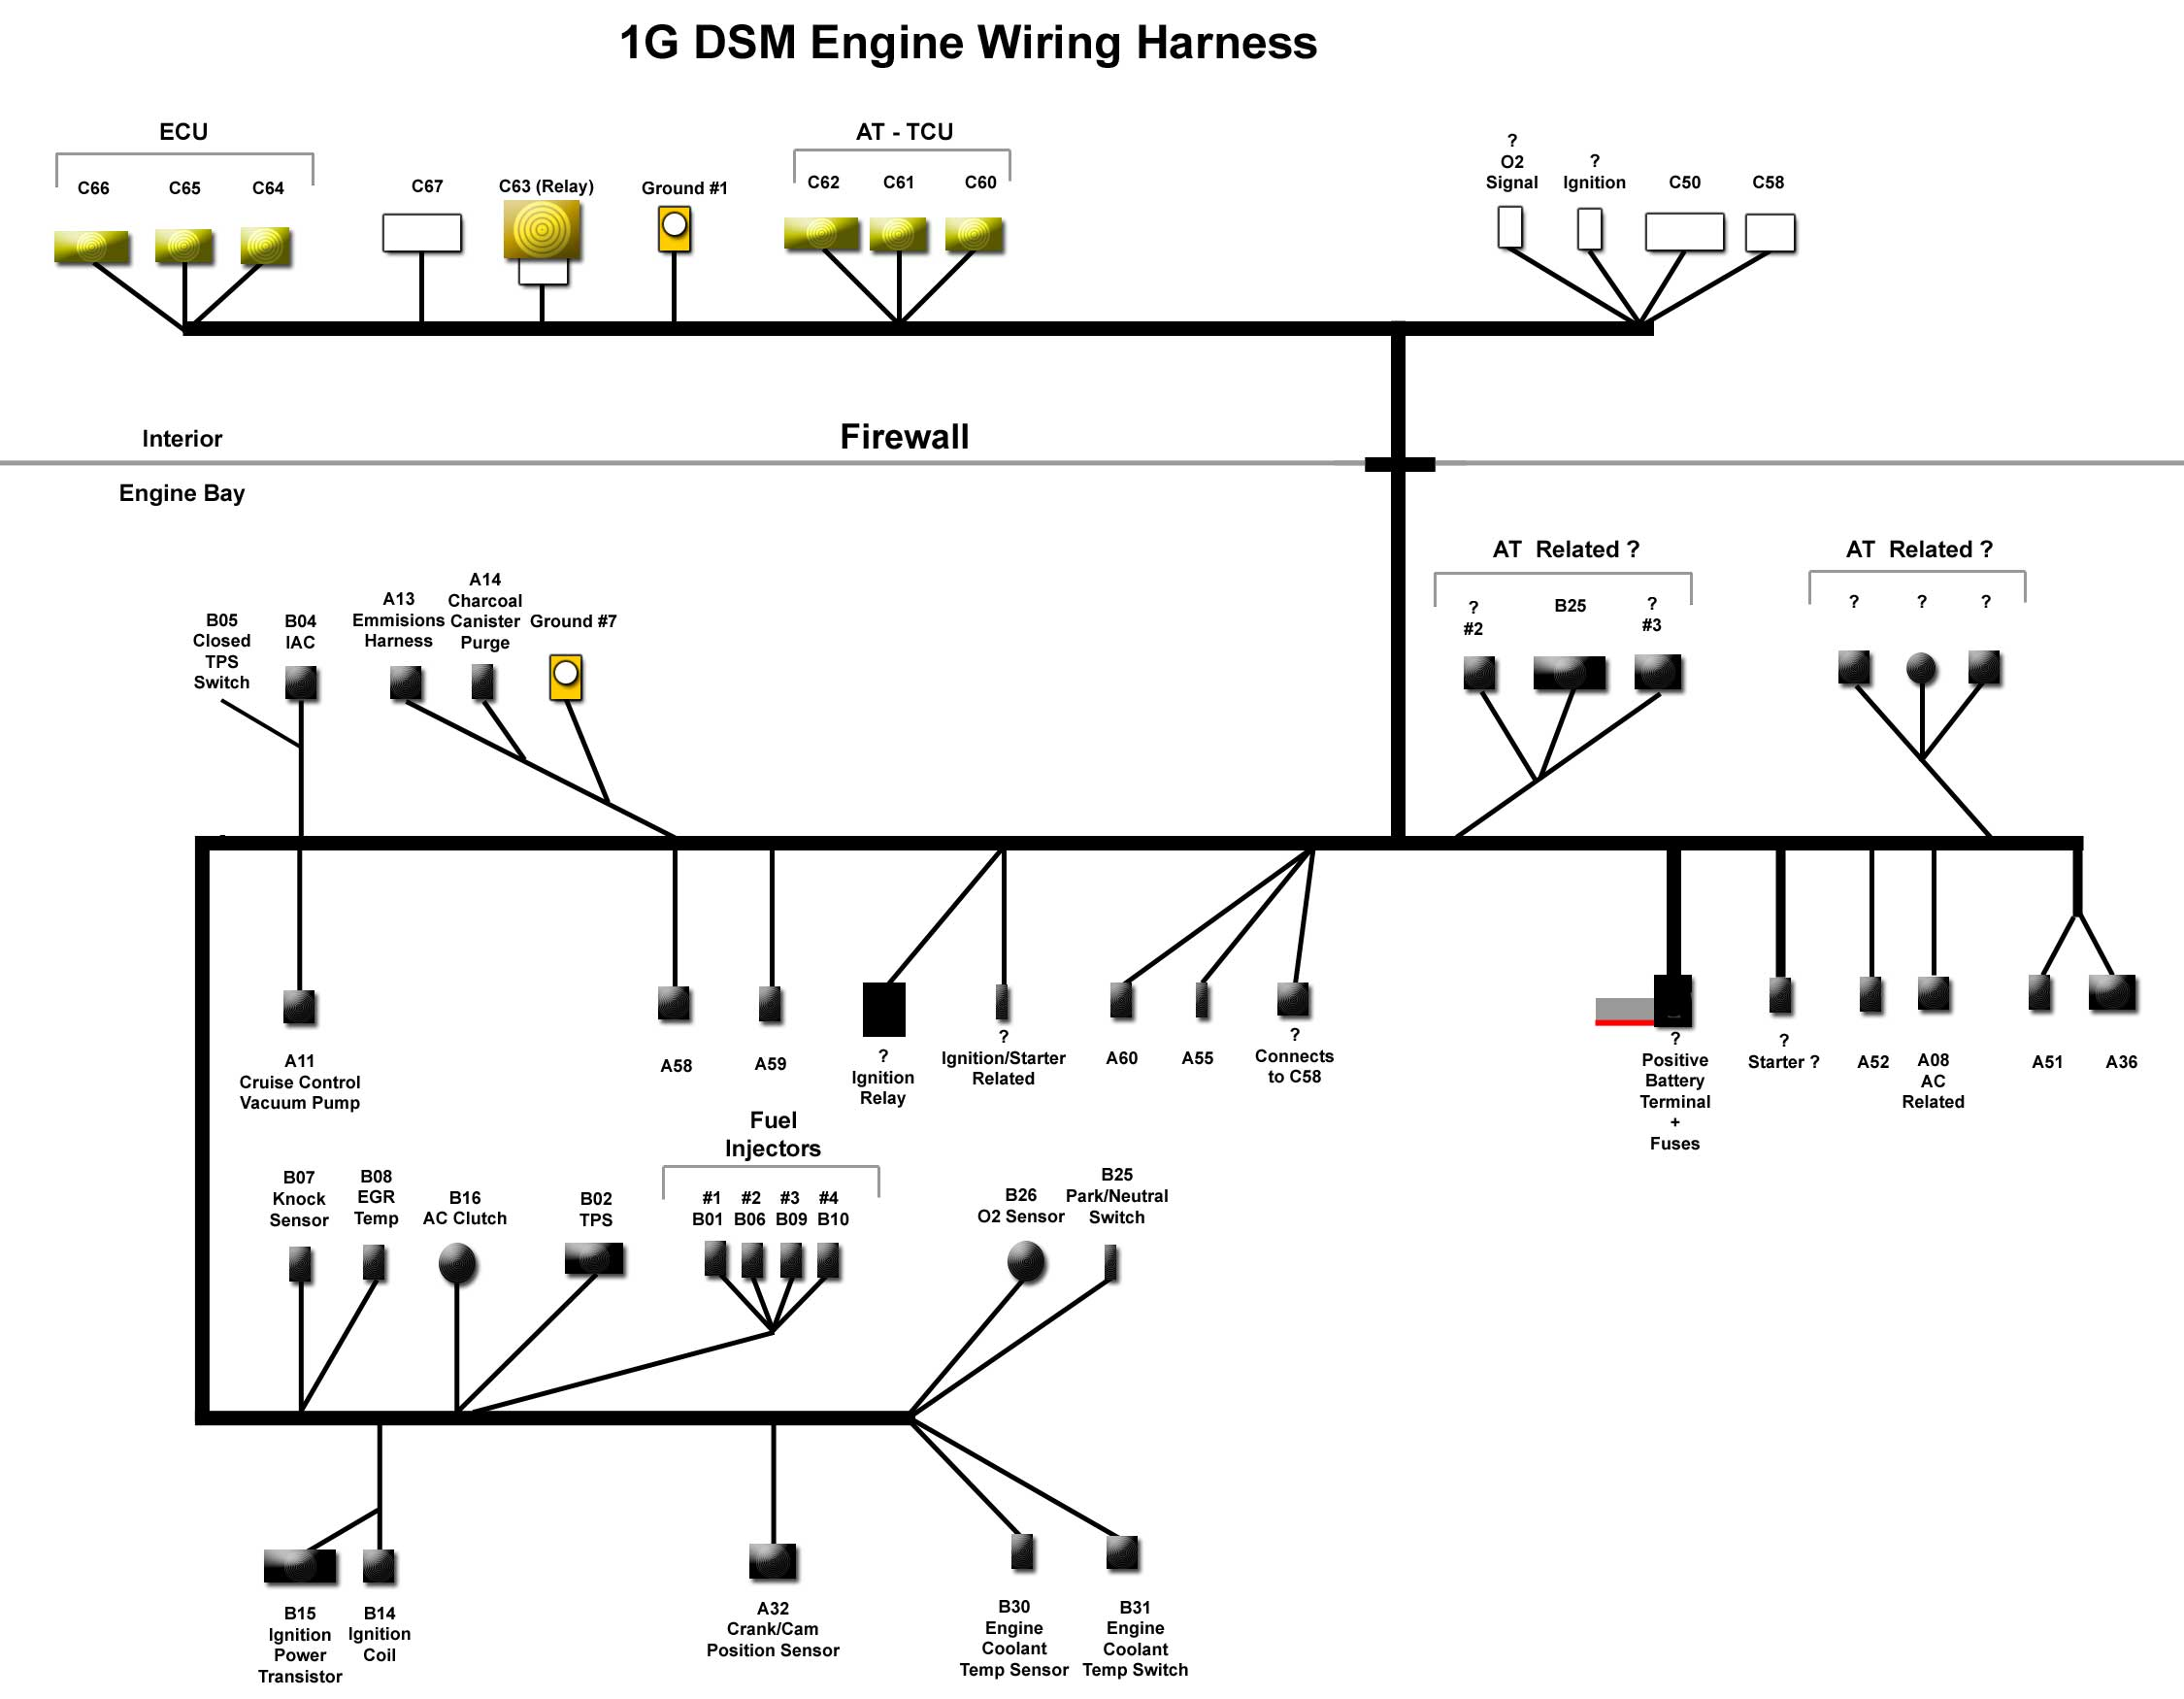 1G DSM EngineHarness 1gb dsm 4g63 turbo wiring harness diagram wiring harness diagram at alyssarenee.co